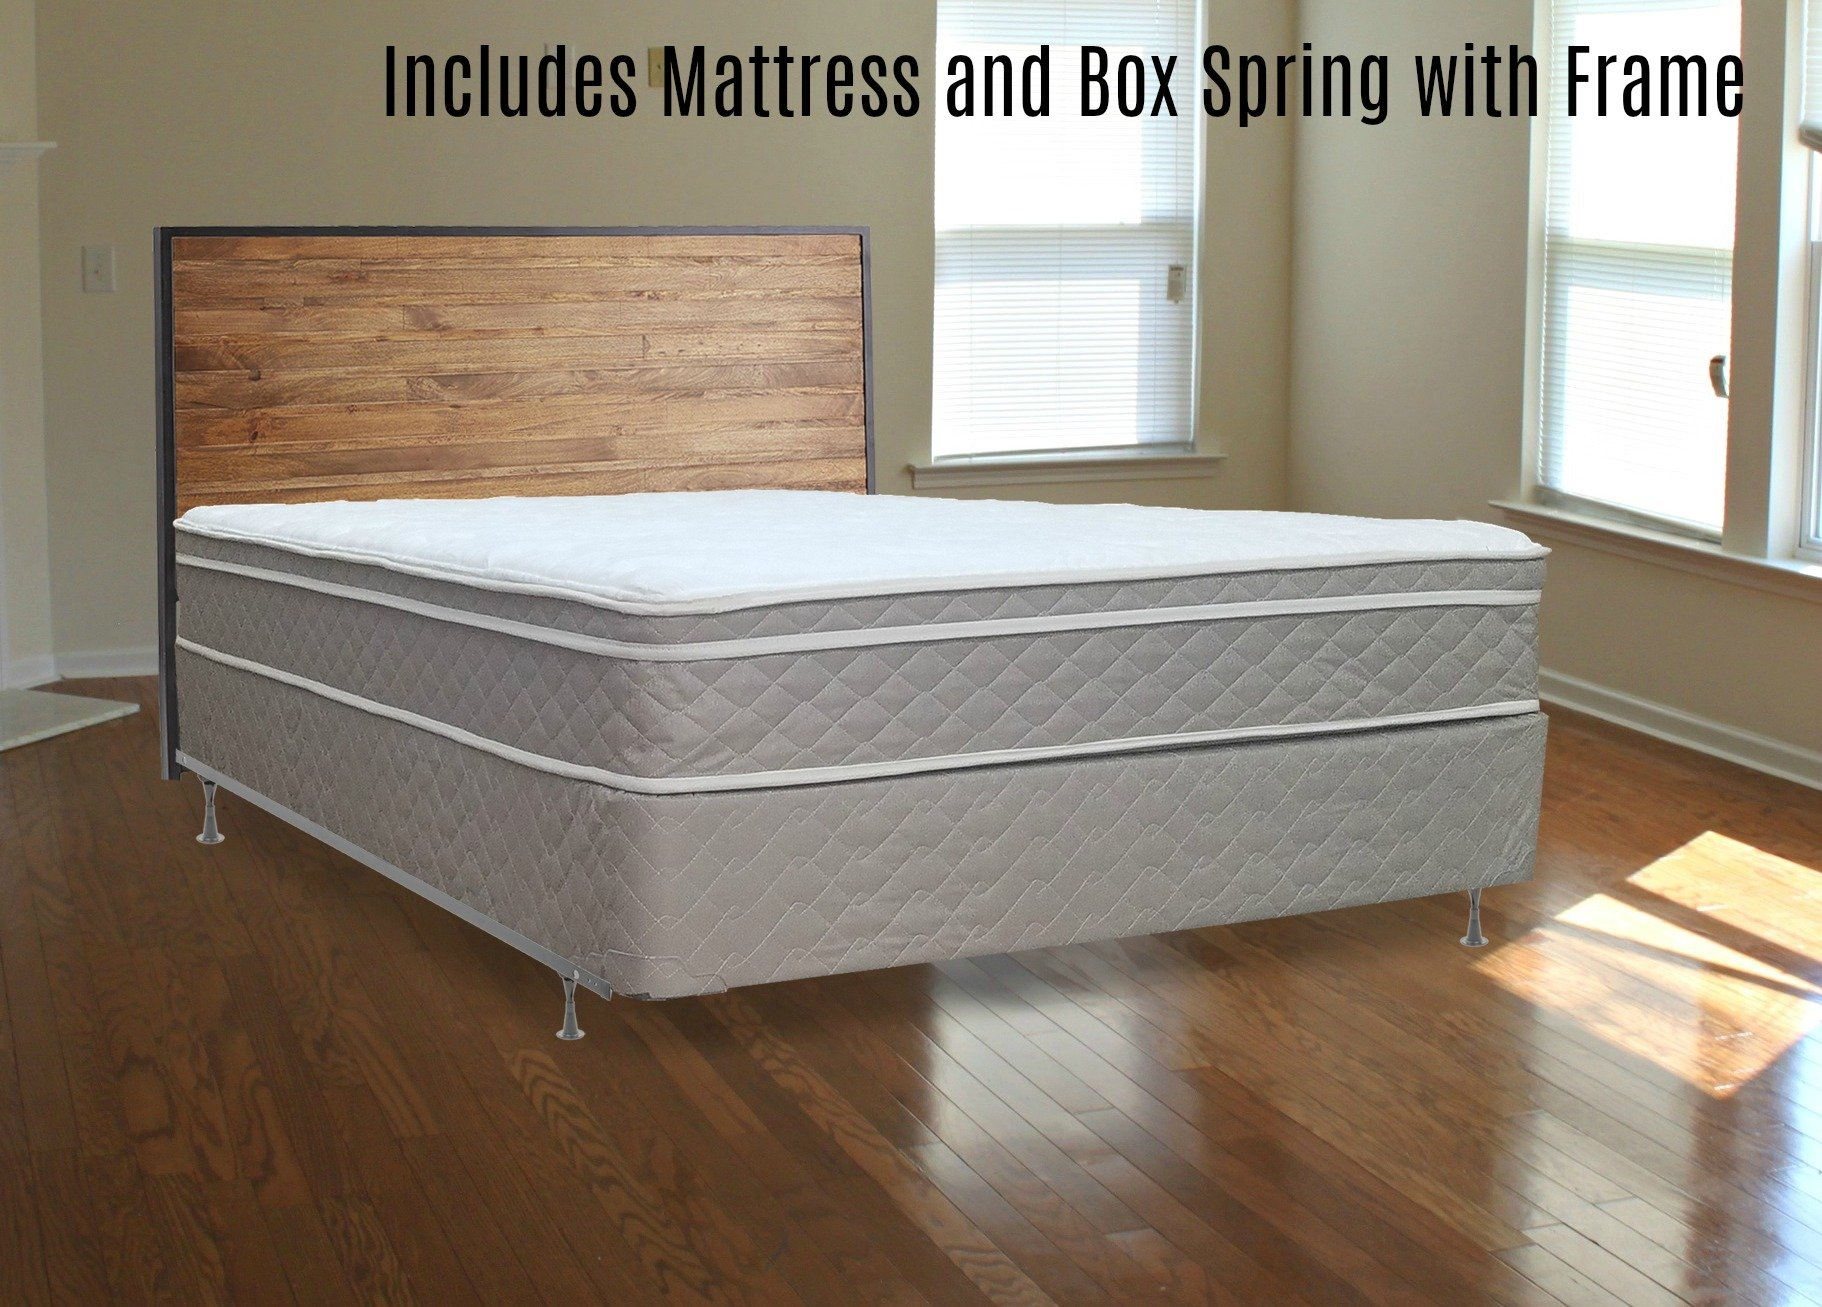 Continental Mattress 10'' Pillowtop Fully Assembled Othopedic Continental Mattress Queen Mattress and Box Spring With Bed Frame,